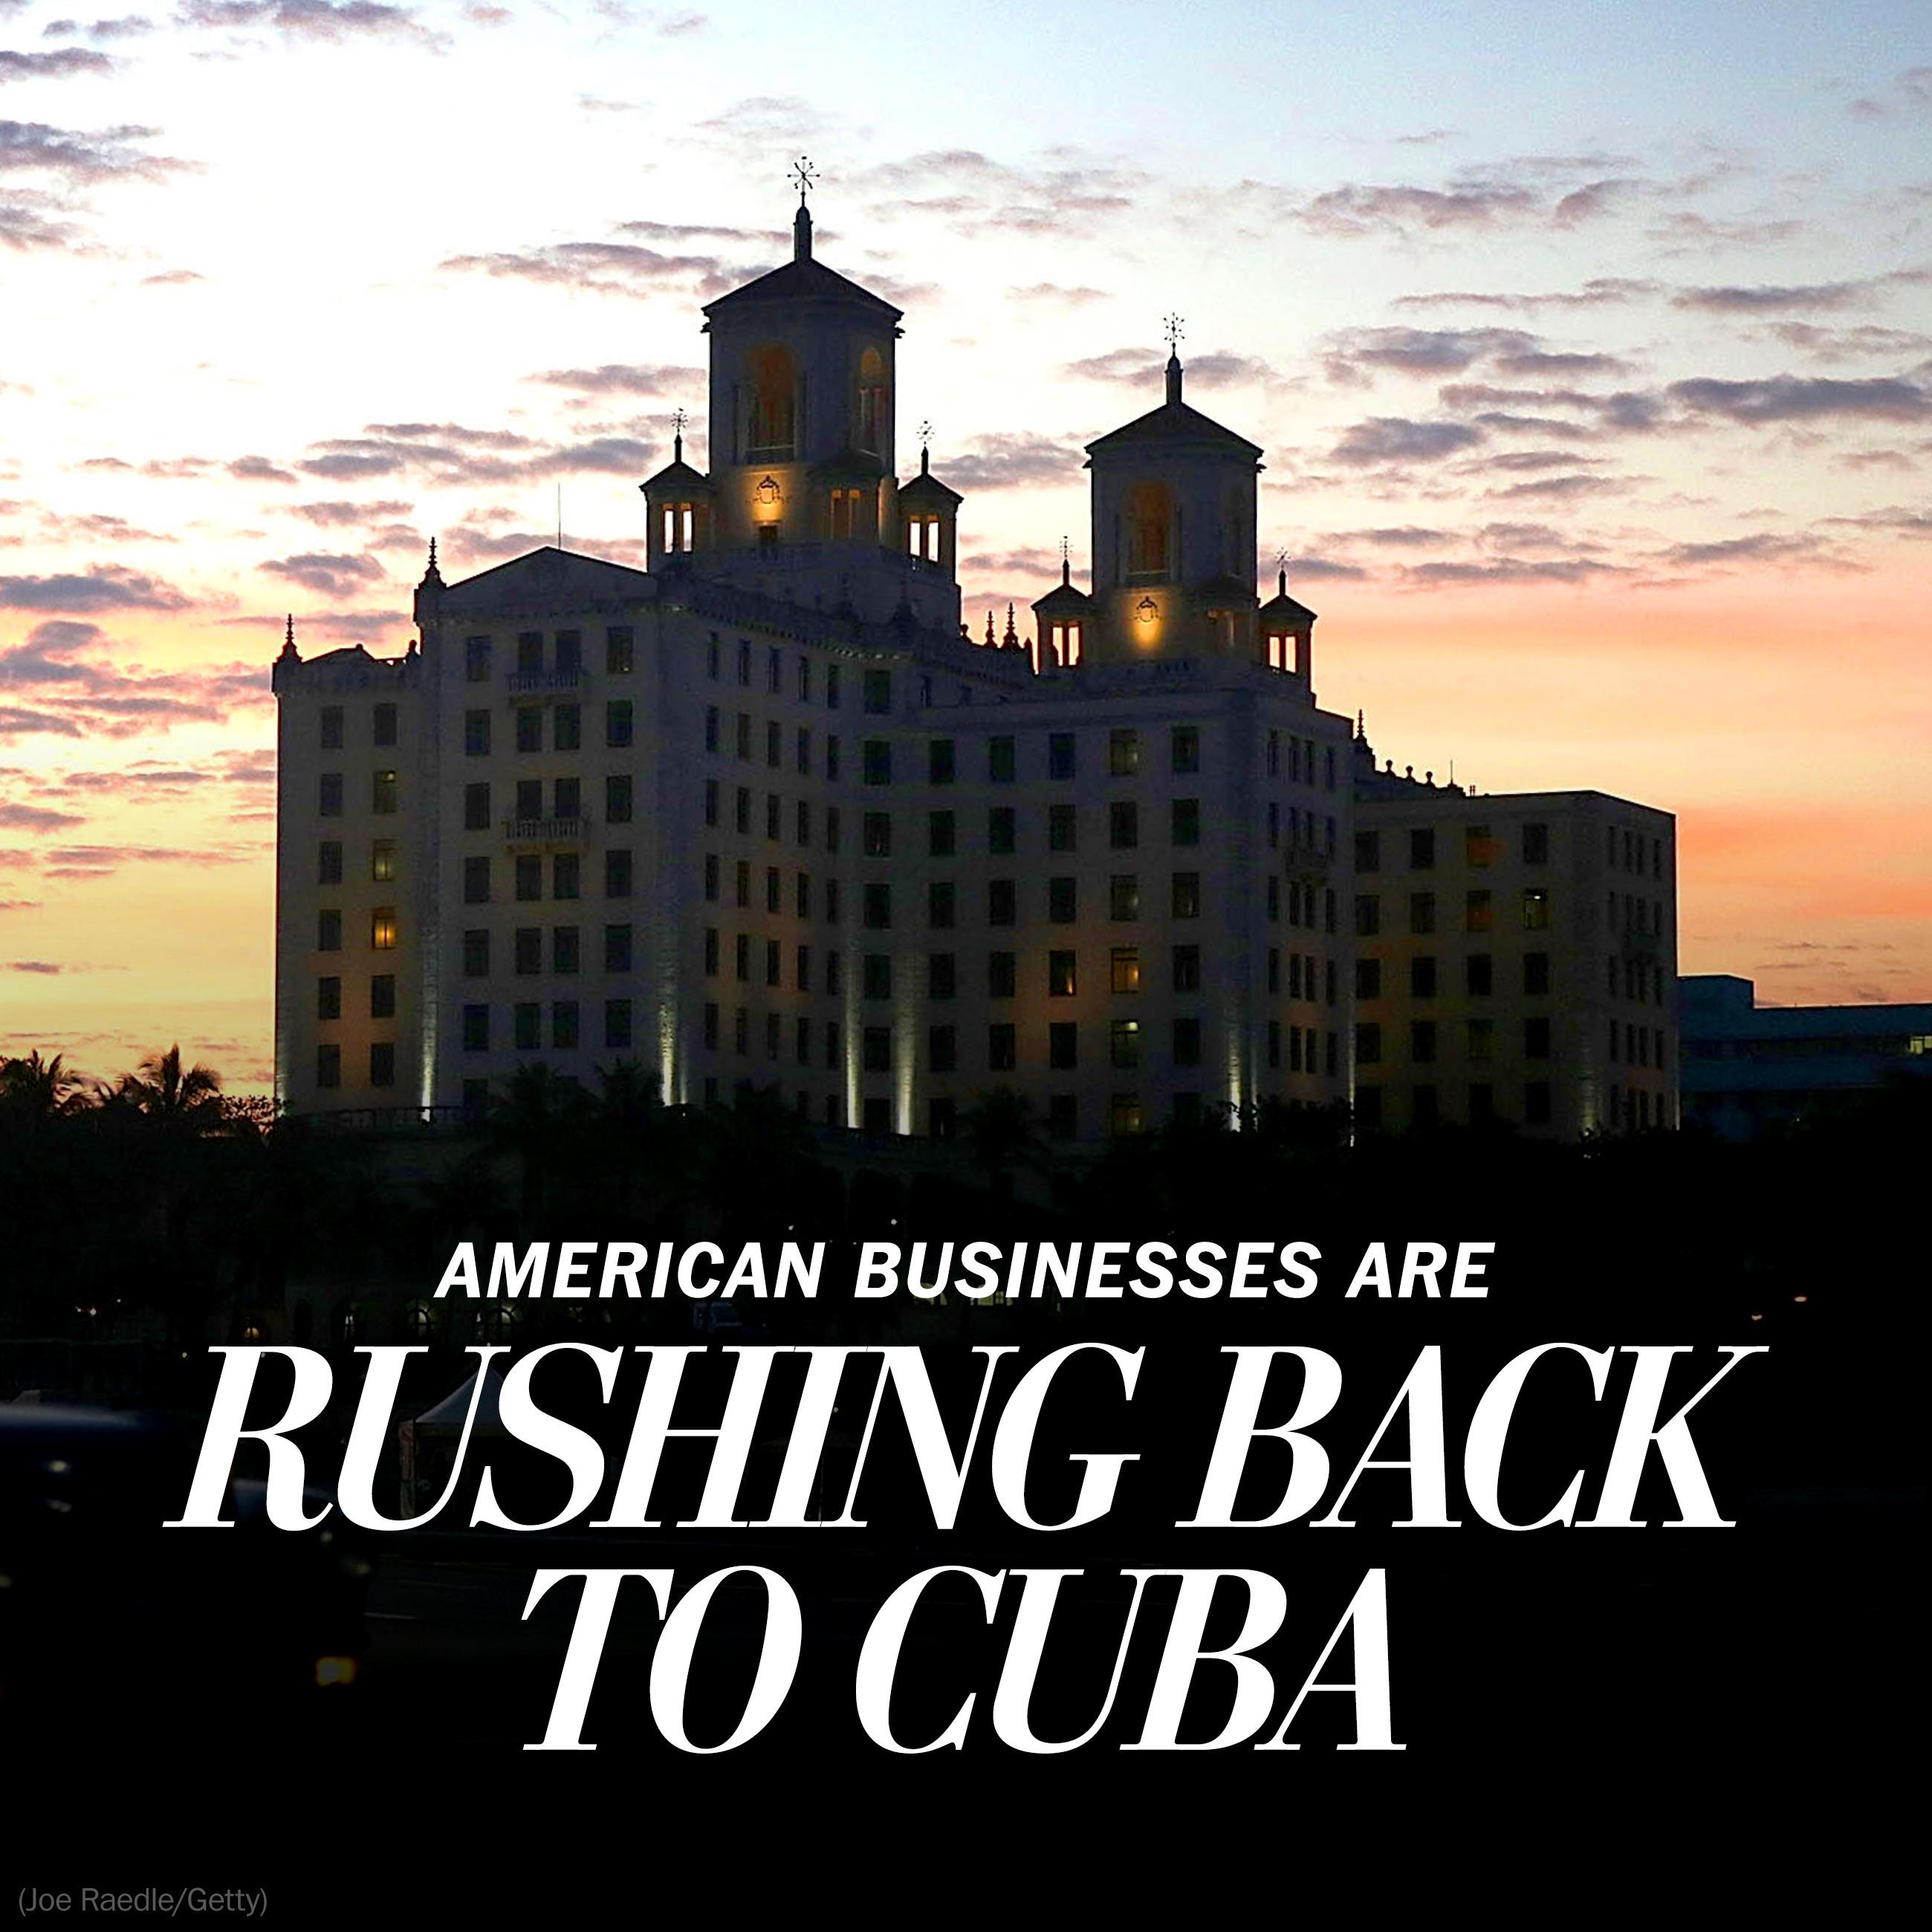 Obama's visit comes as American businesses are rushing back to Cuba